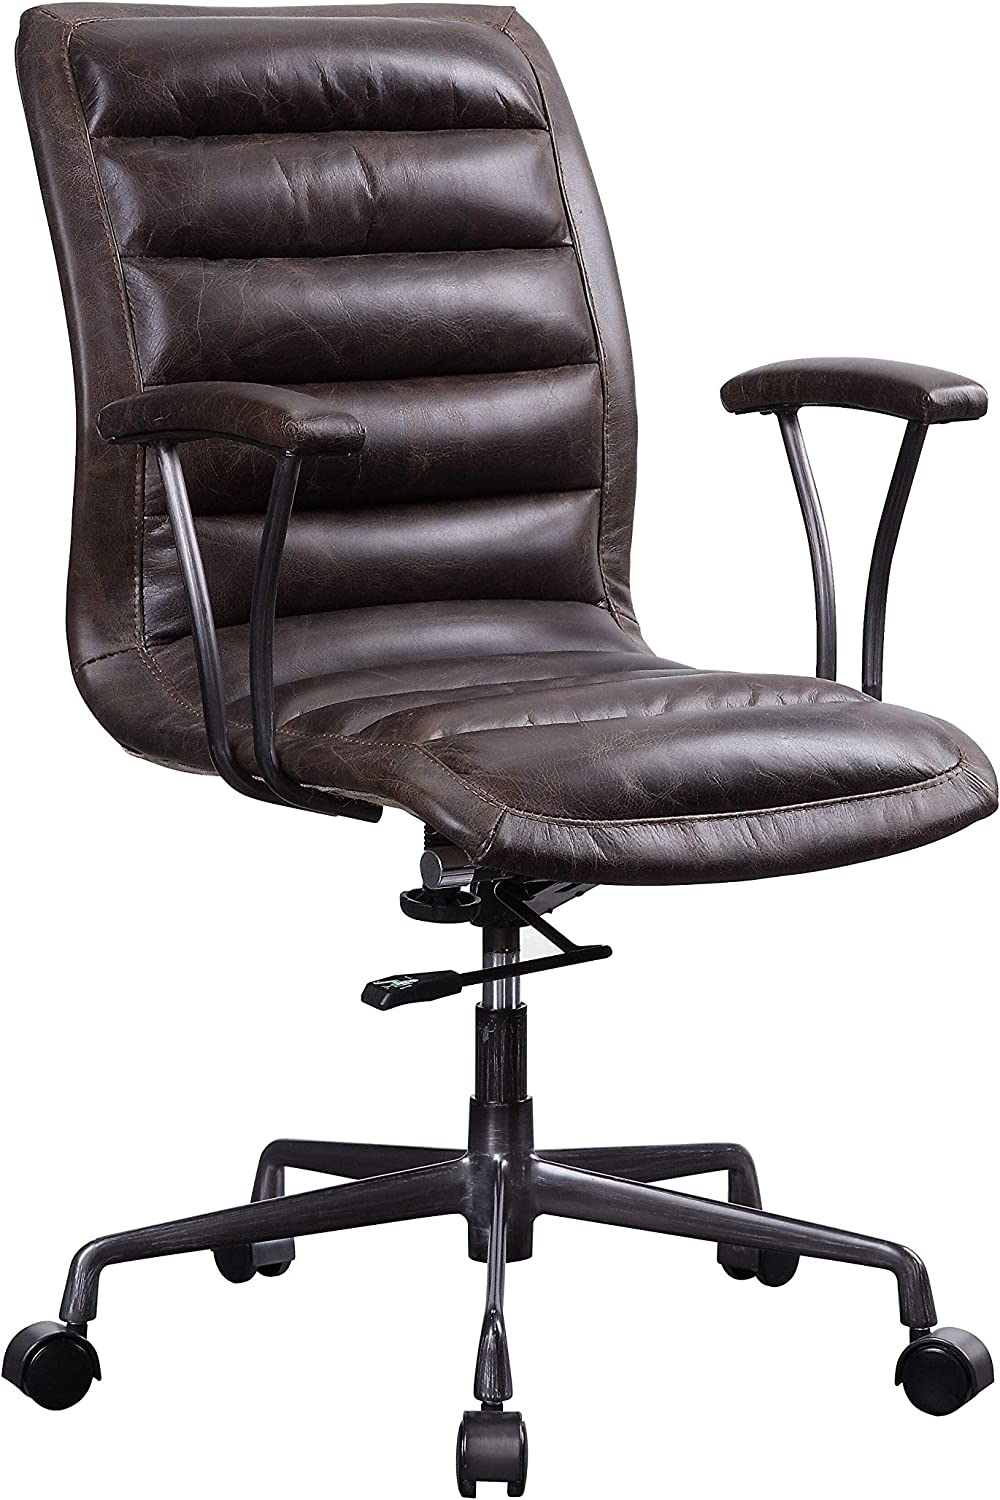 ACME Zooey Executive Office Chair - - Distress Chocolate Top Grain Leather